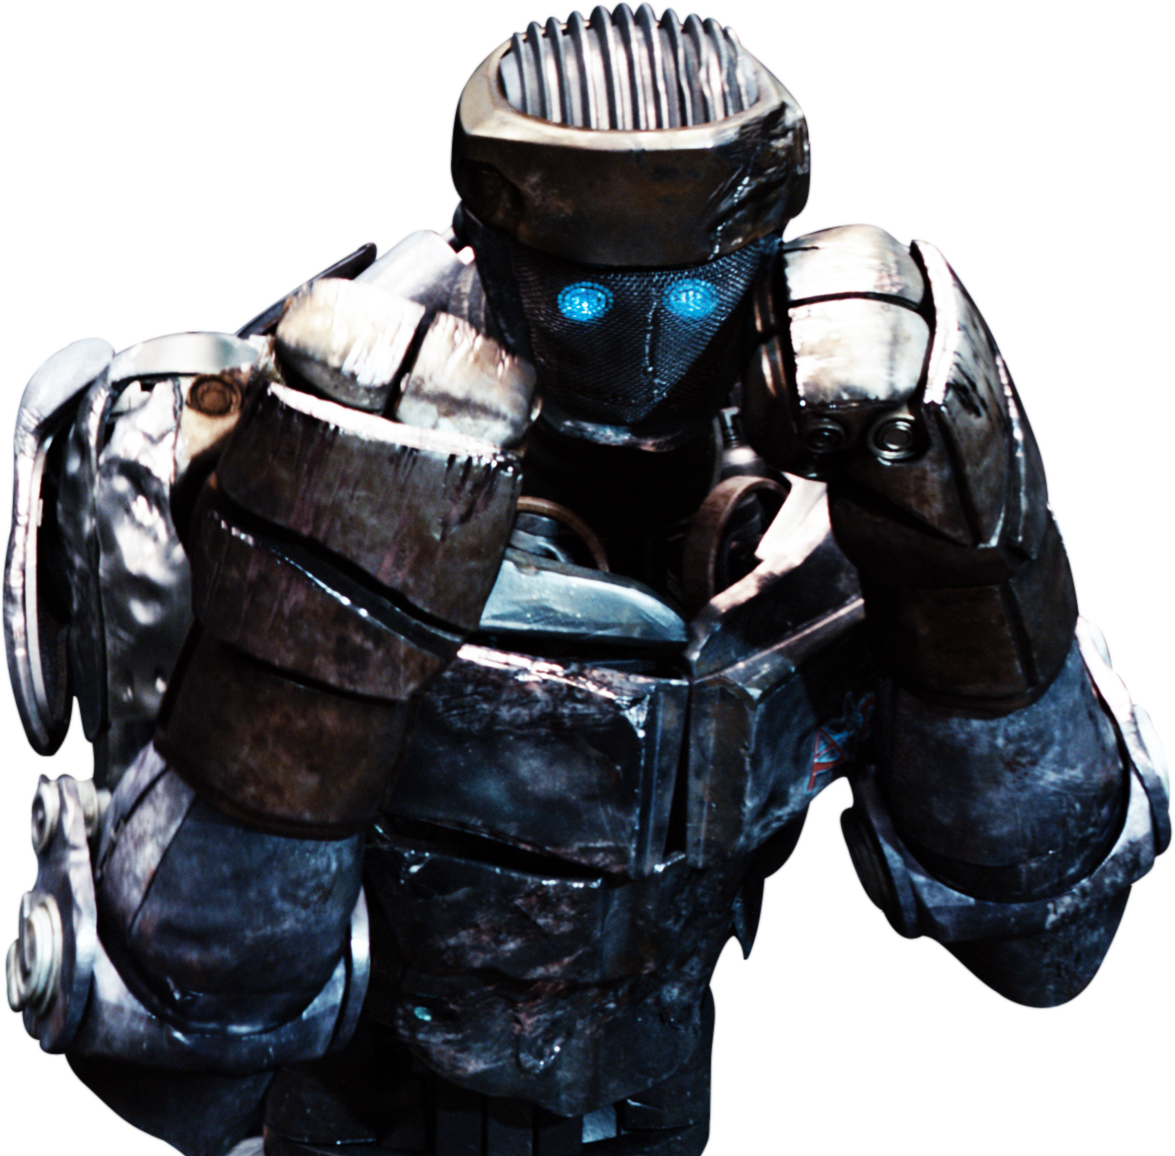 Image - Img-2208965-1-Atom Real Steel Boxer.png | Real